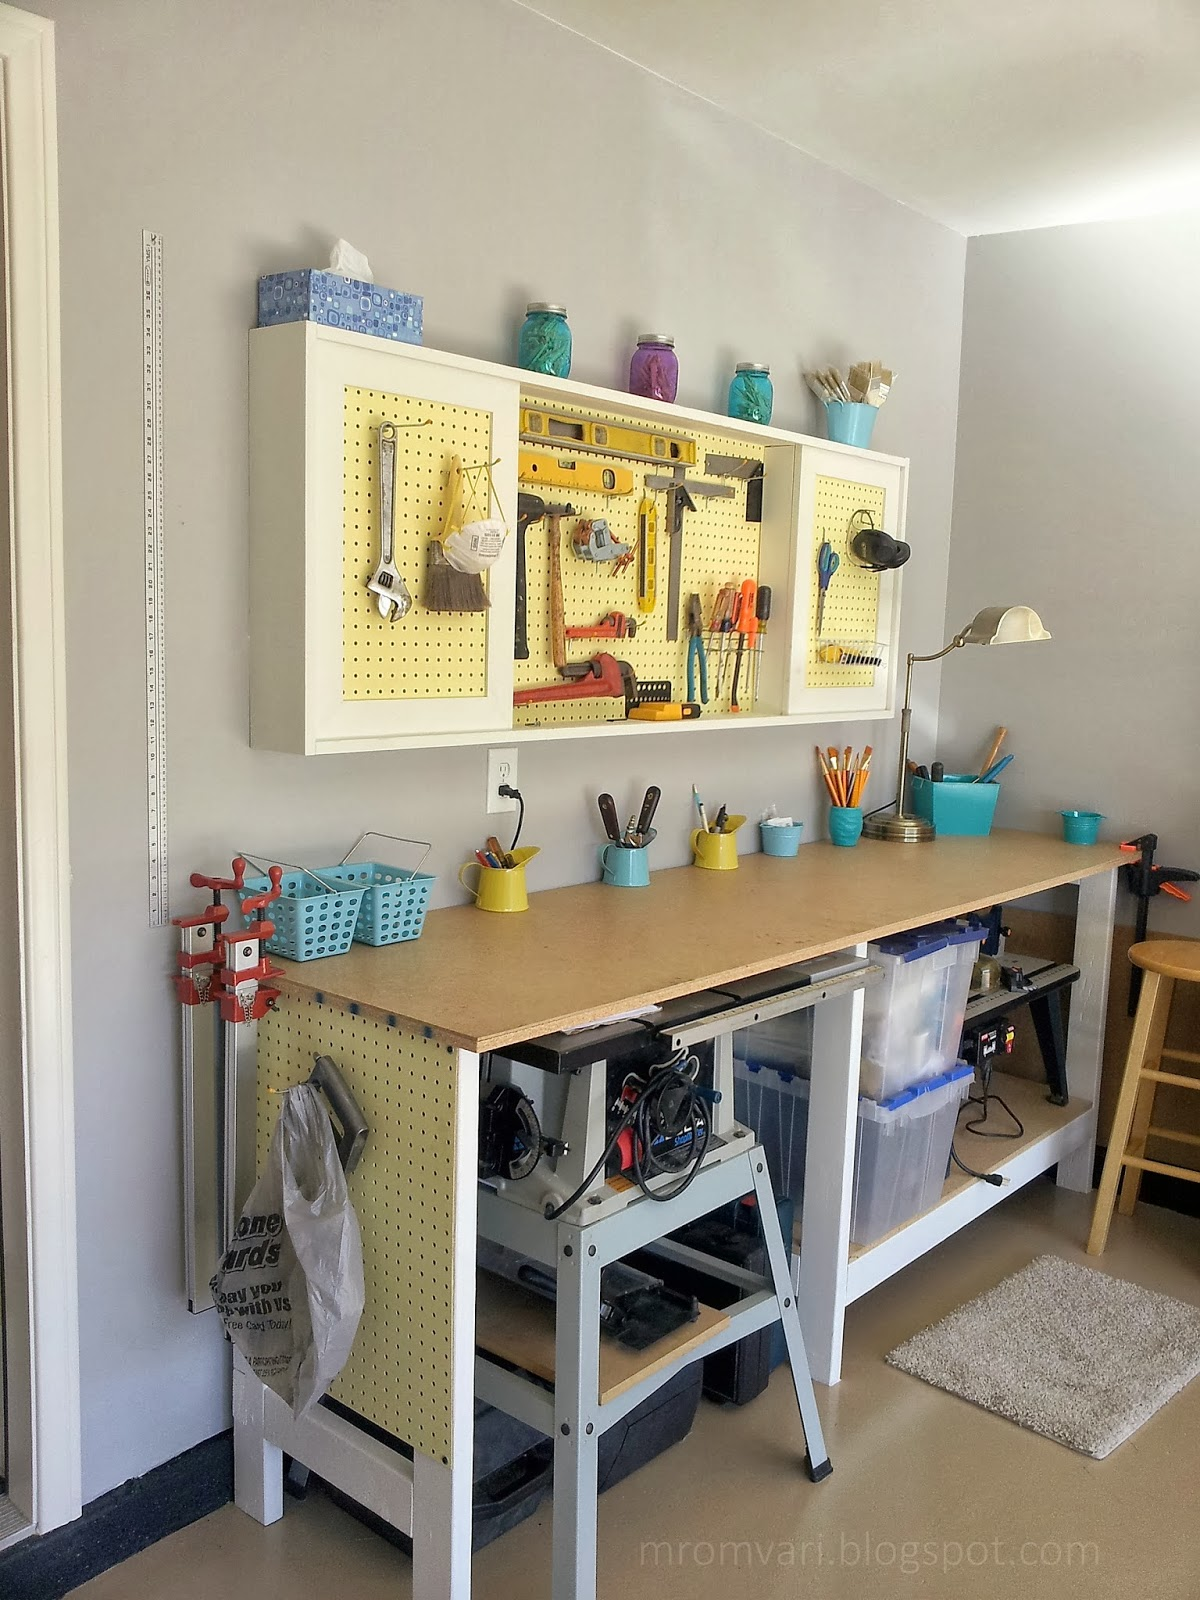 DIY tutorial to build a workbench and pegboard tool cabinet with sliding doors, featured on Remodelaholic.com